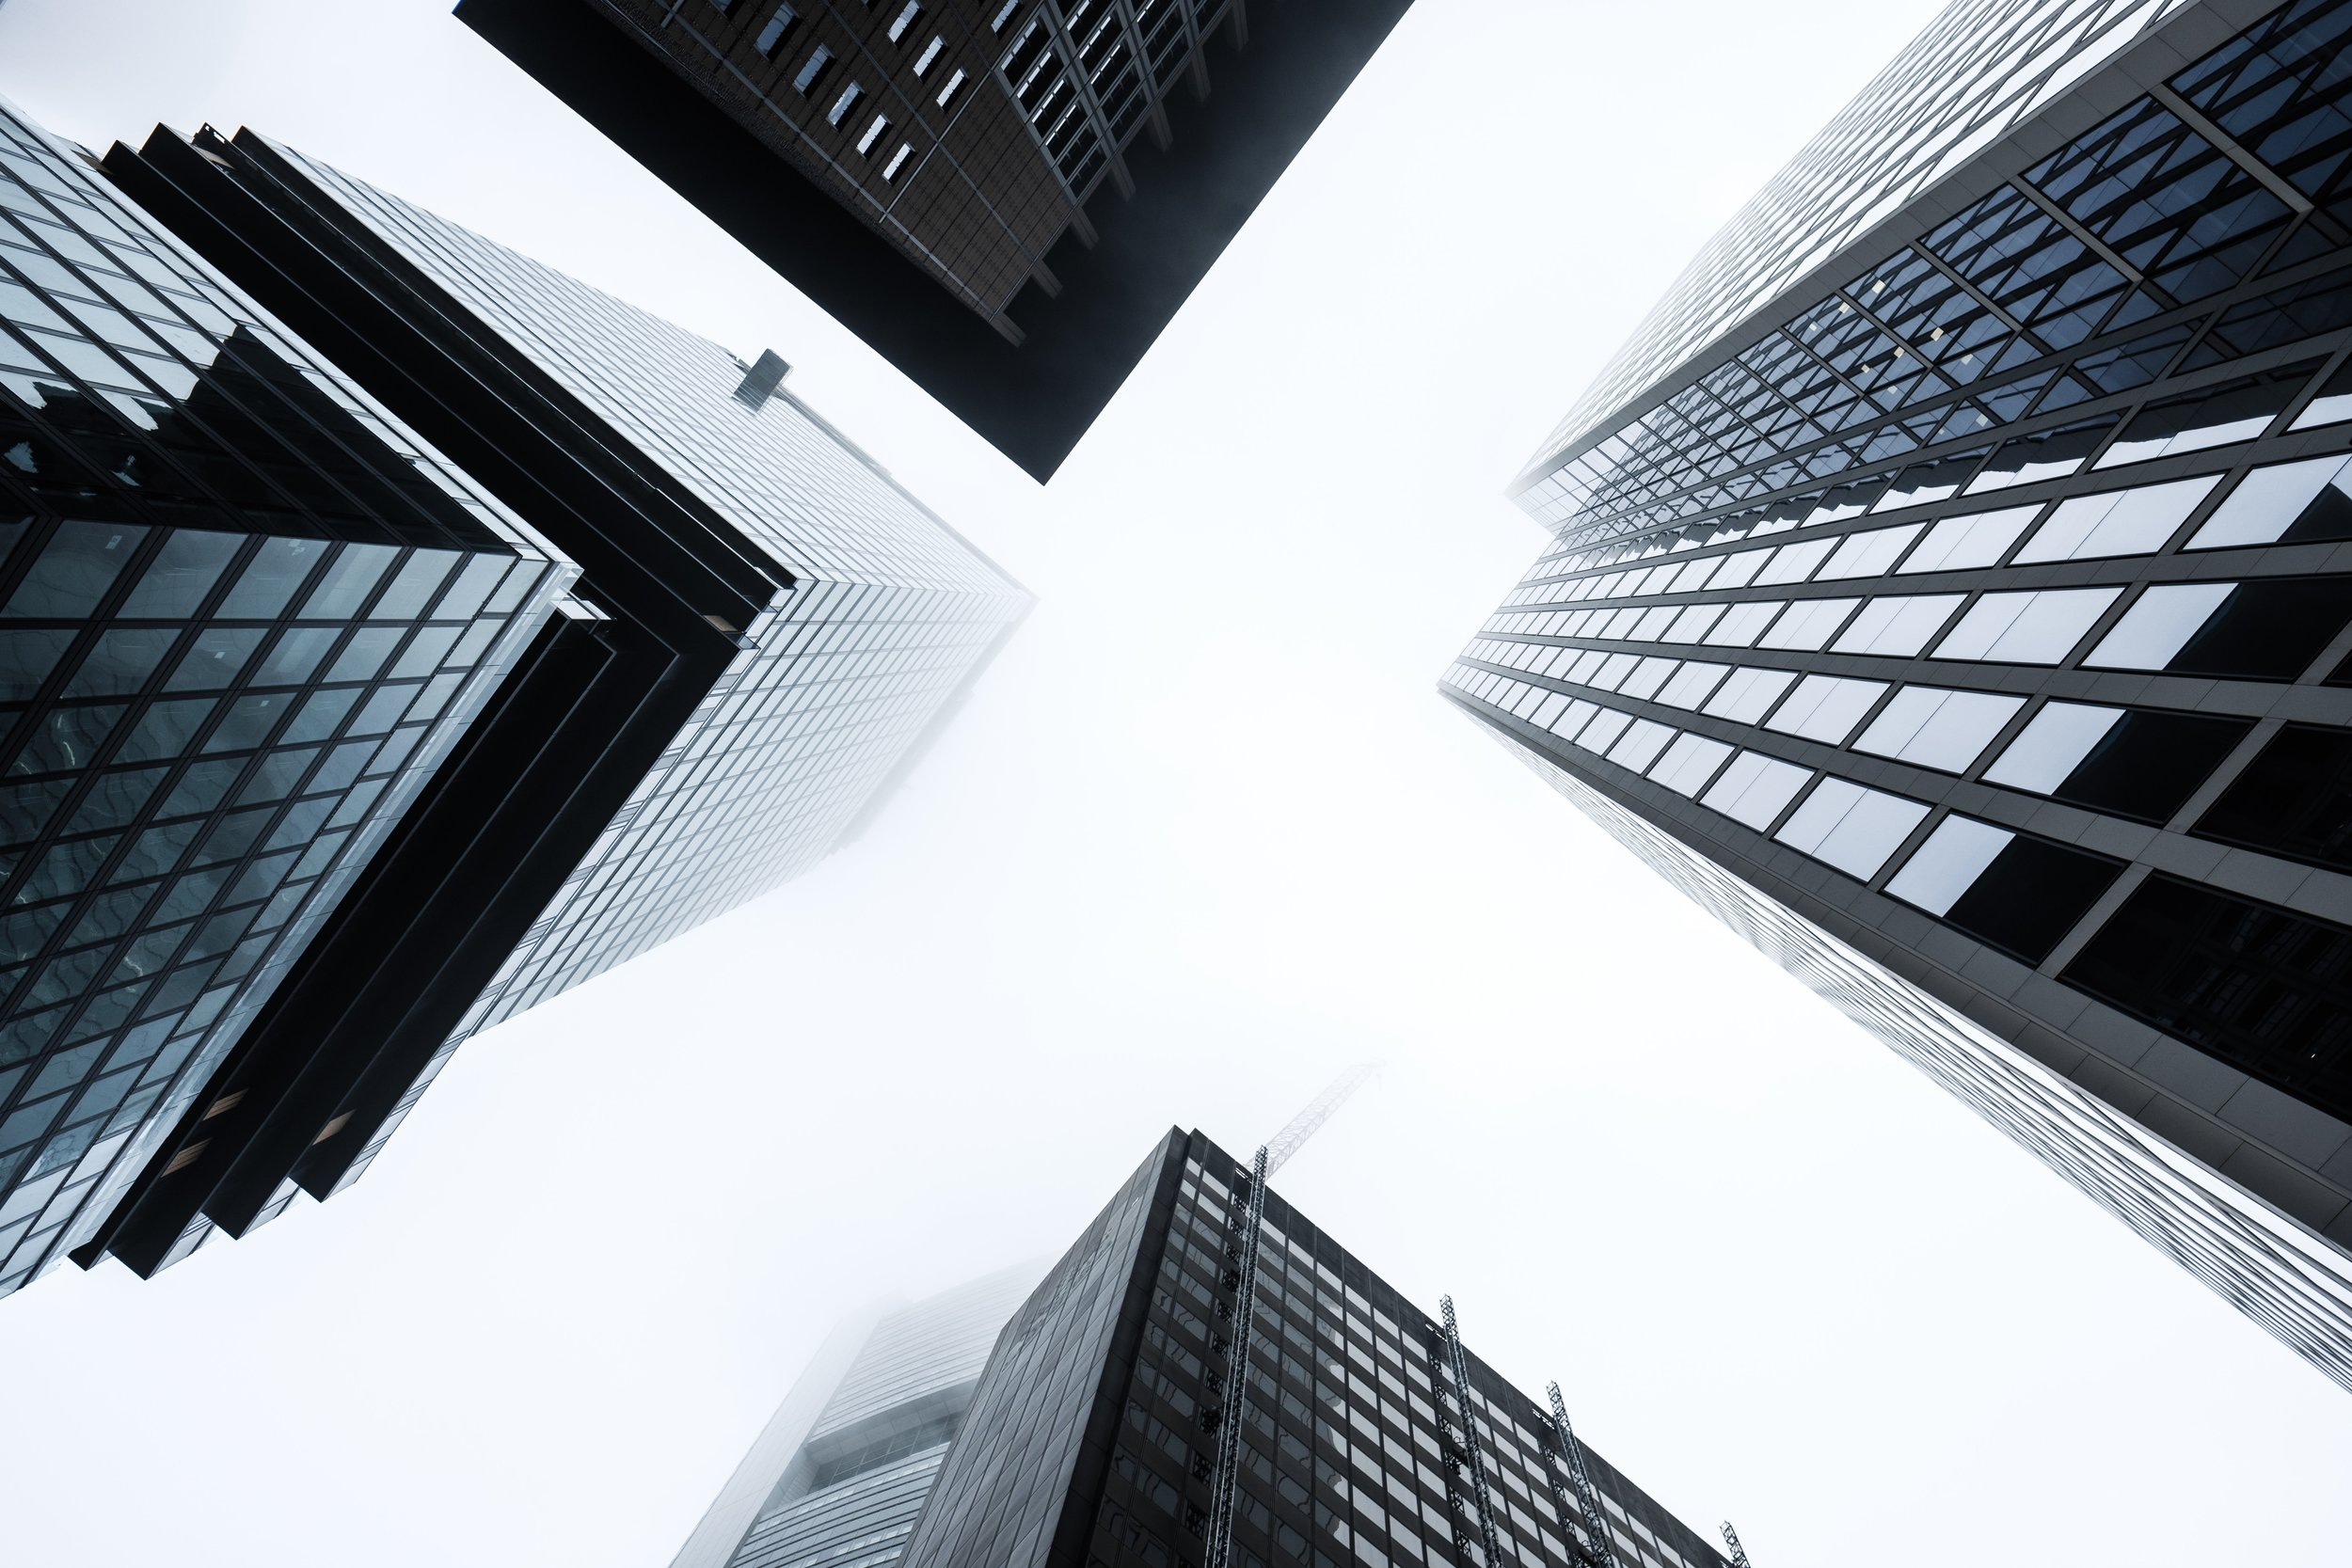 ARTICLE - The Purpose Imperative:Why corporations should think again about their role in the world